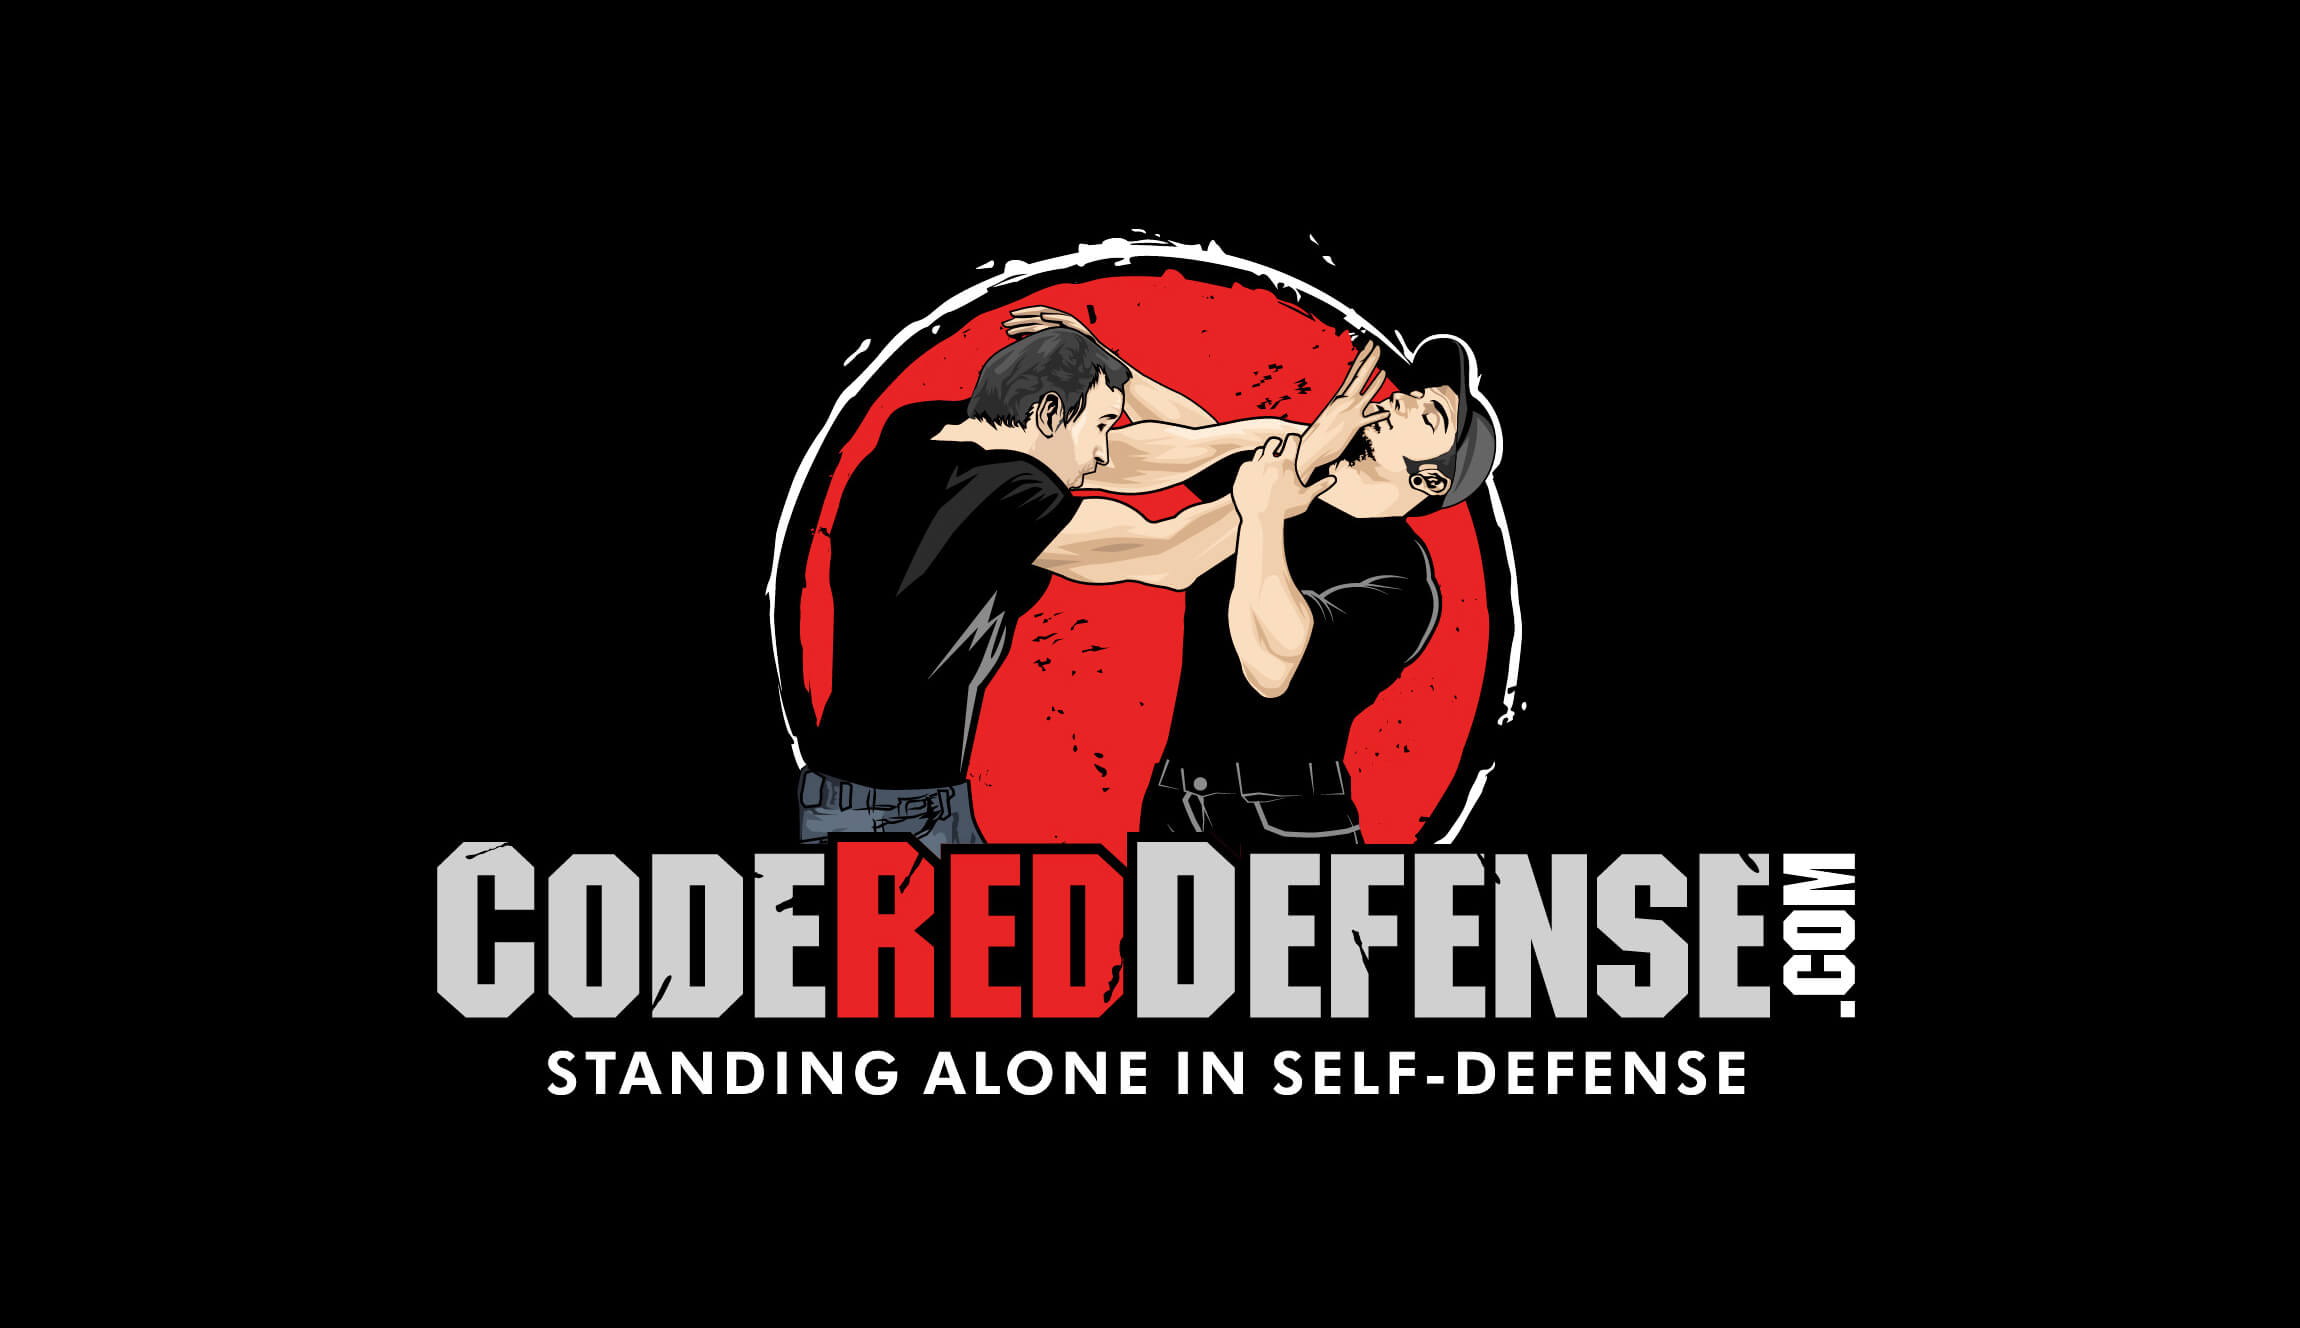 Introduction to Code Red Defense